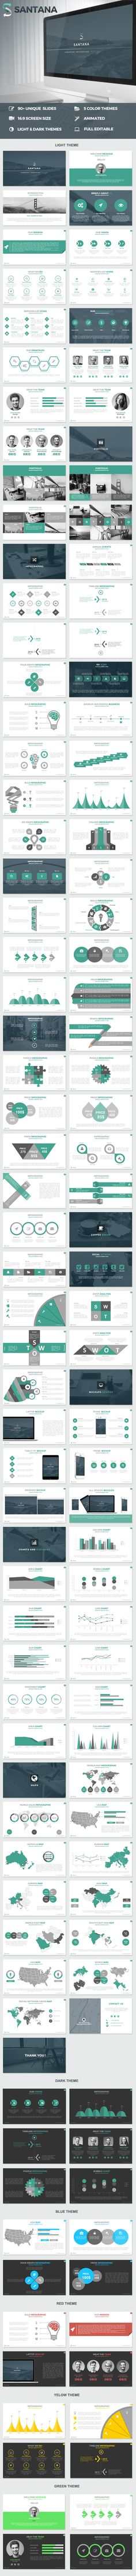 Santana_Powerpoint_Presentation_Template - PowerPoint Templates Presentation Templates